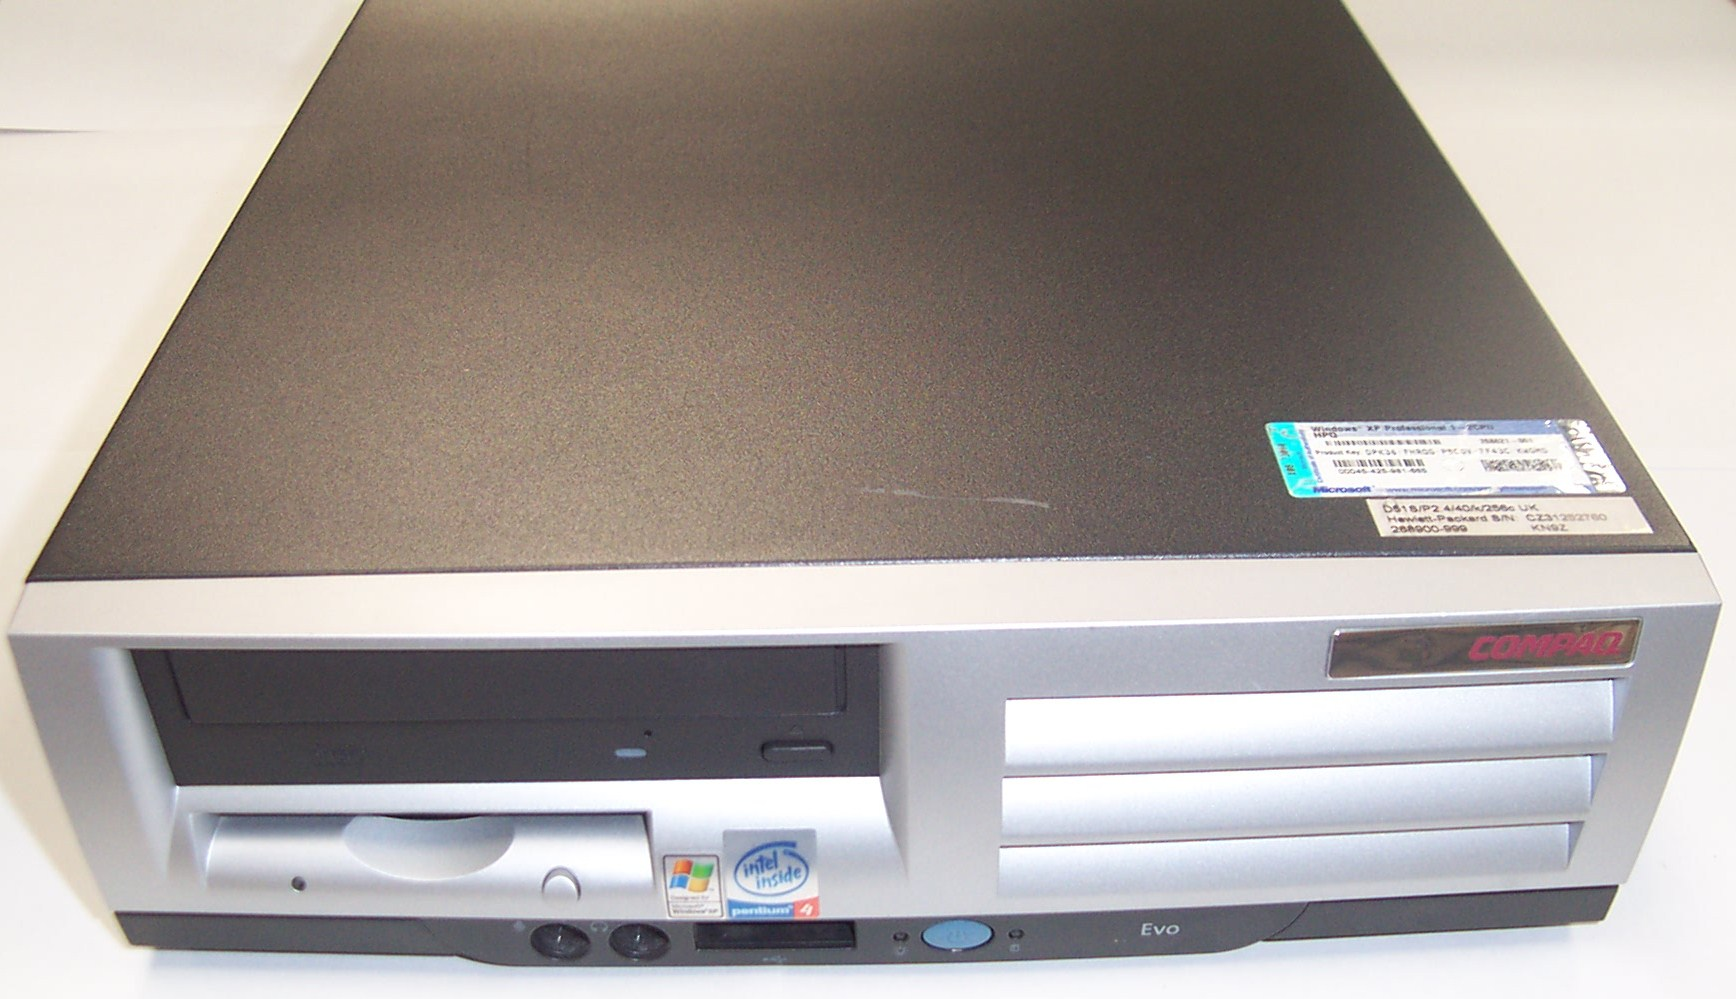 COMPAQ EVO D510 LAN DRIVER FOR WINDOWS 7